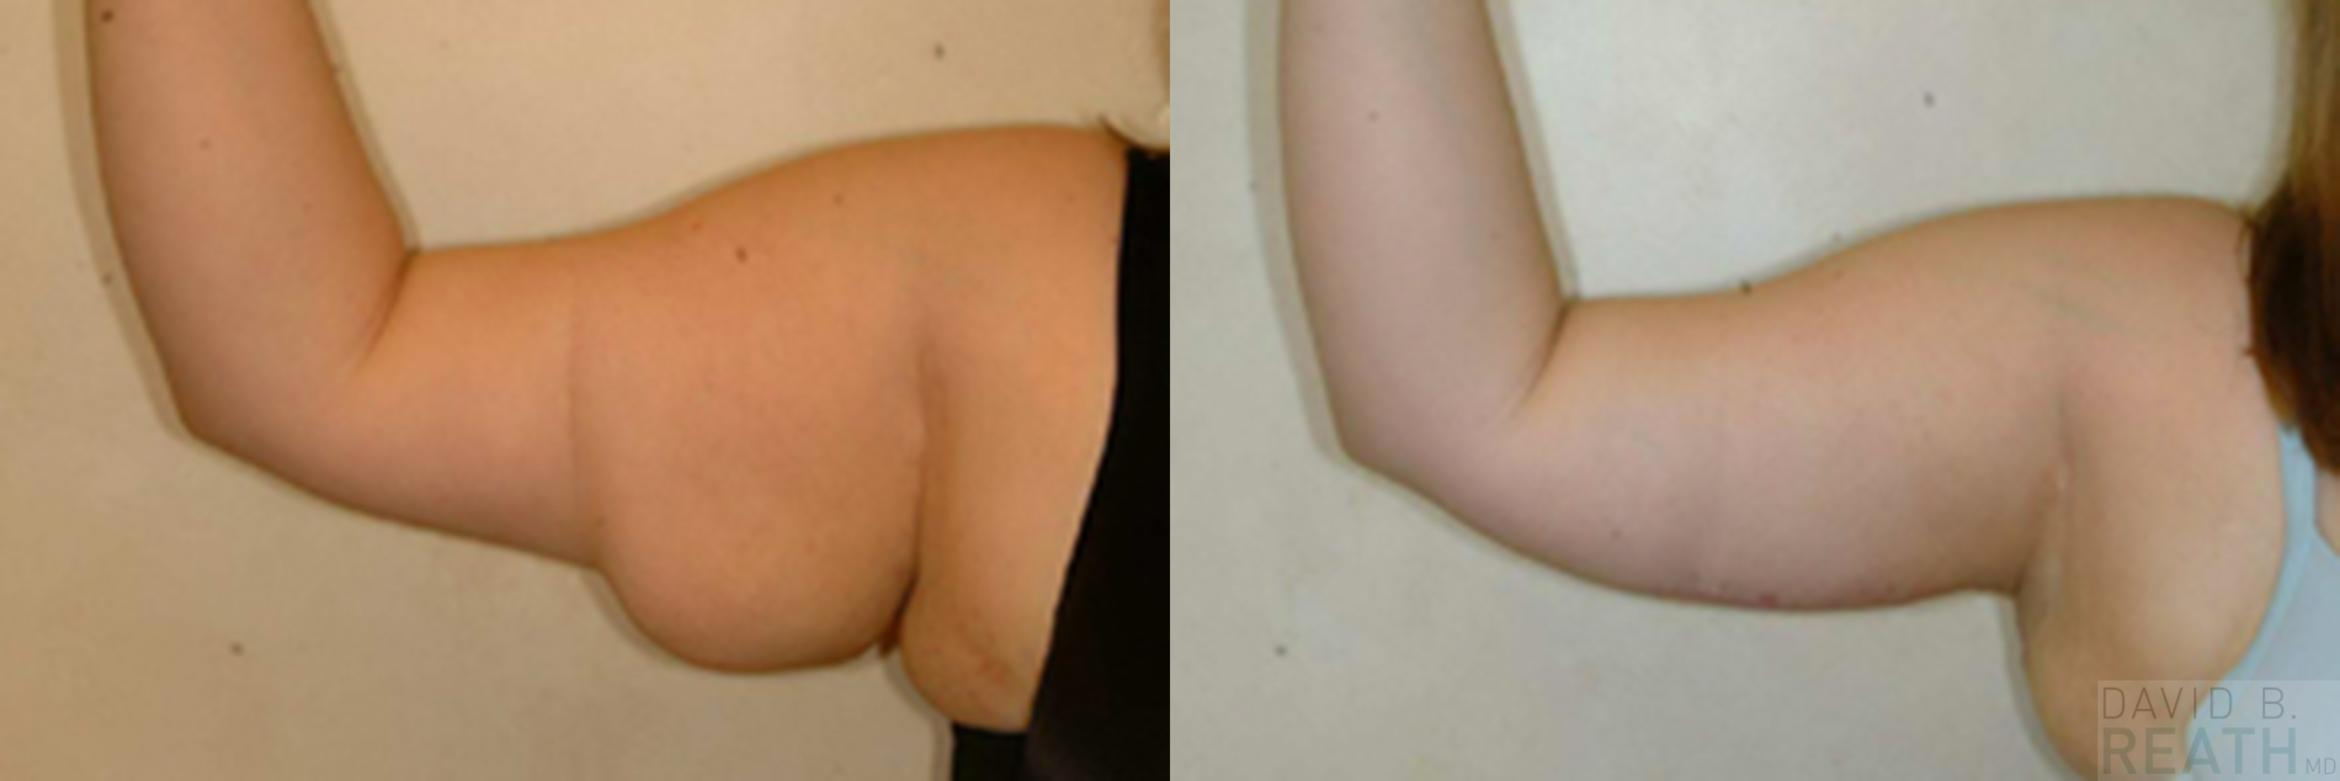 Arm Lift (Brachioplasty) Before & After Photo | Knoxville, Tennessee | David B. Reath, MD